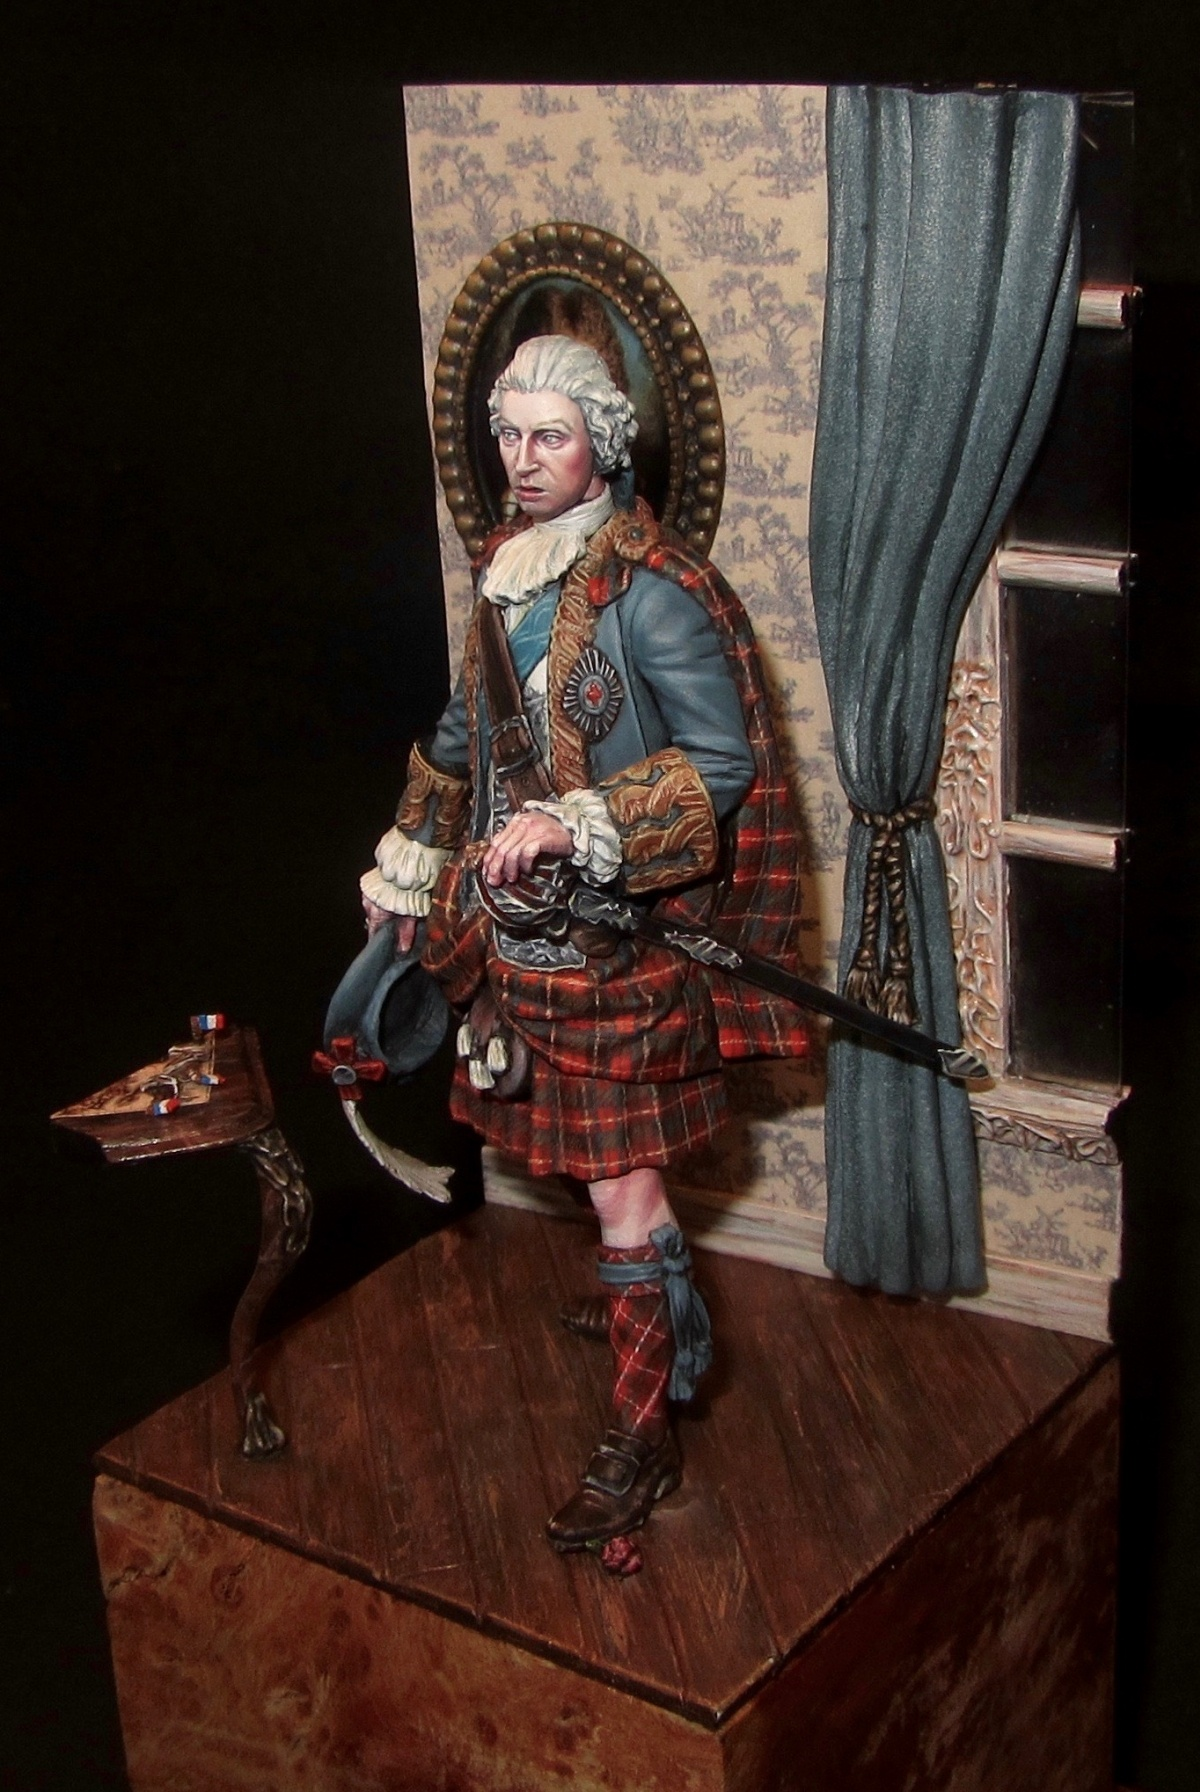 Bonnie Prince Charlie By Aythami Alonso Torrent PuttyampPaint